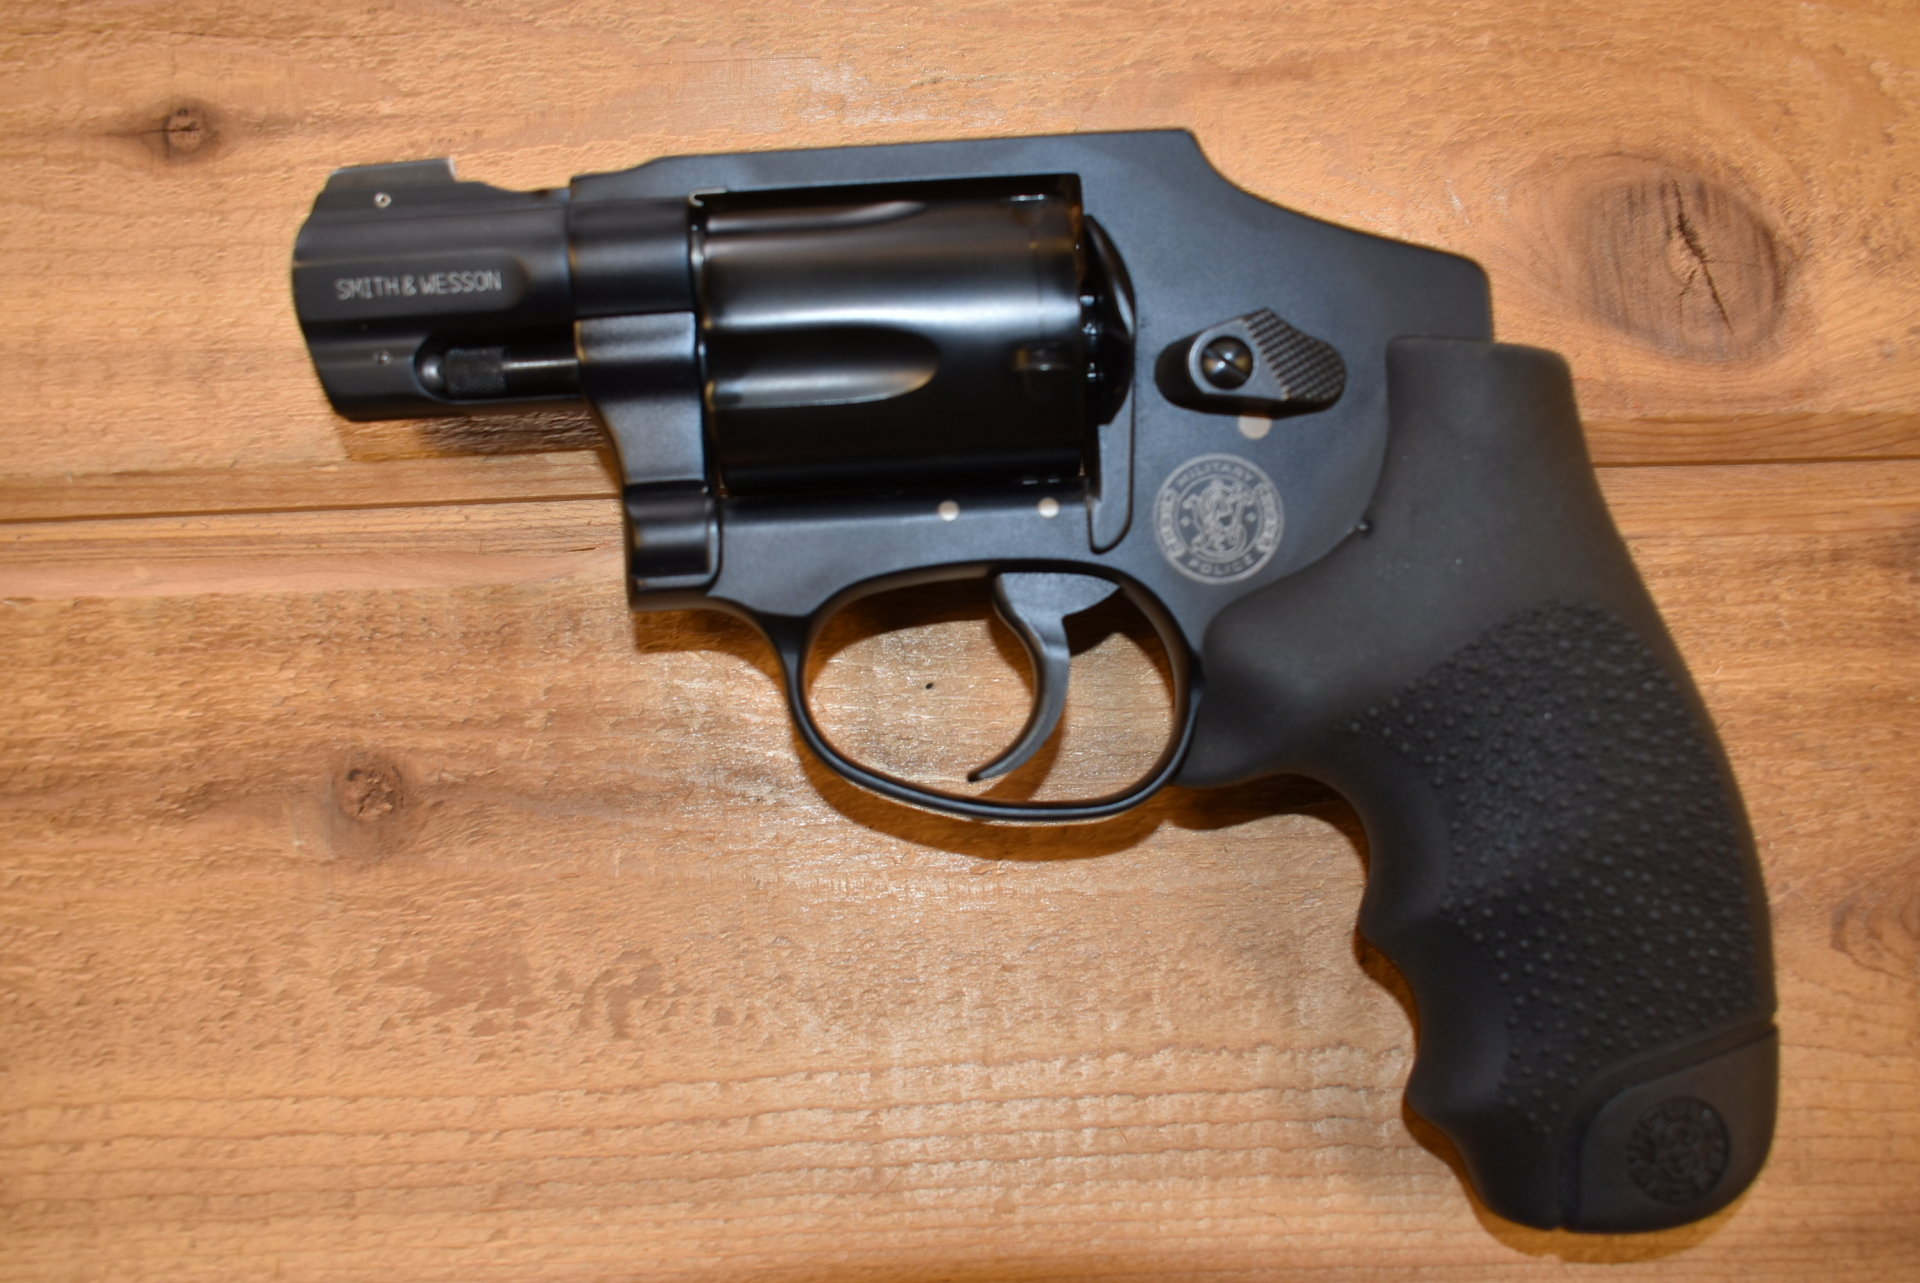 Smith & Wesson M&P 340 357 magnum